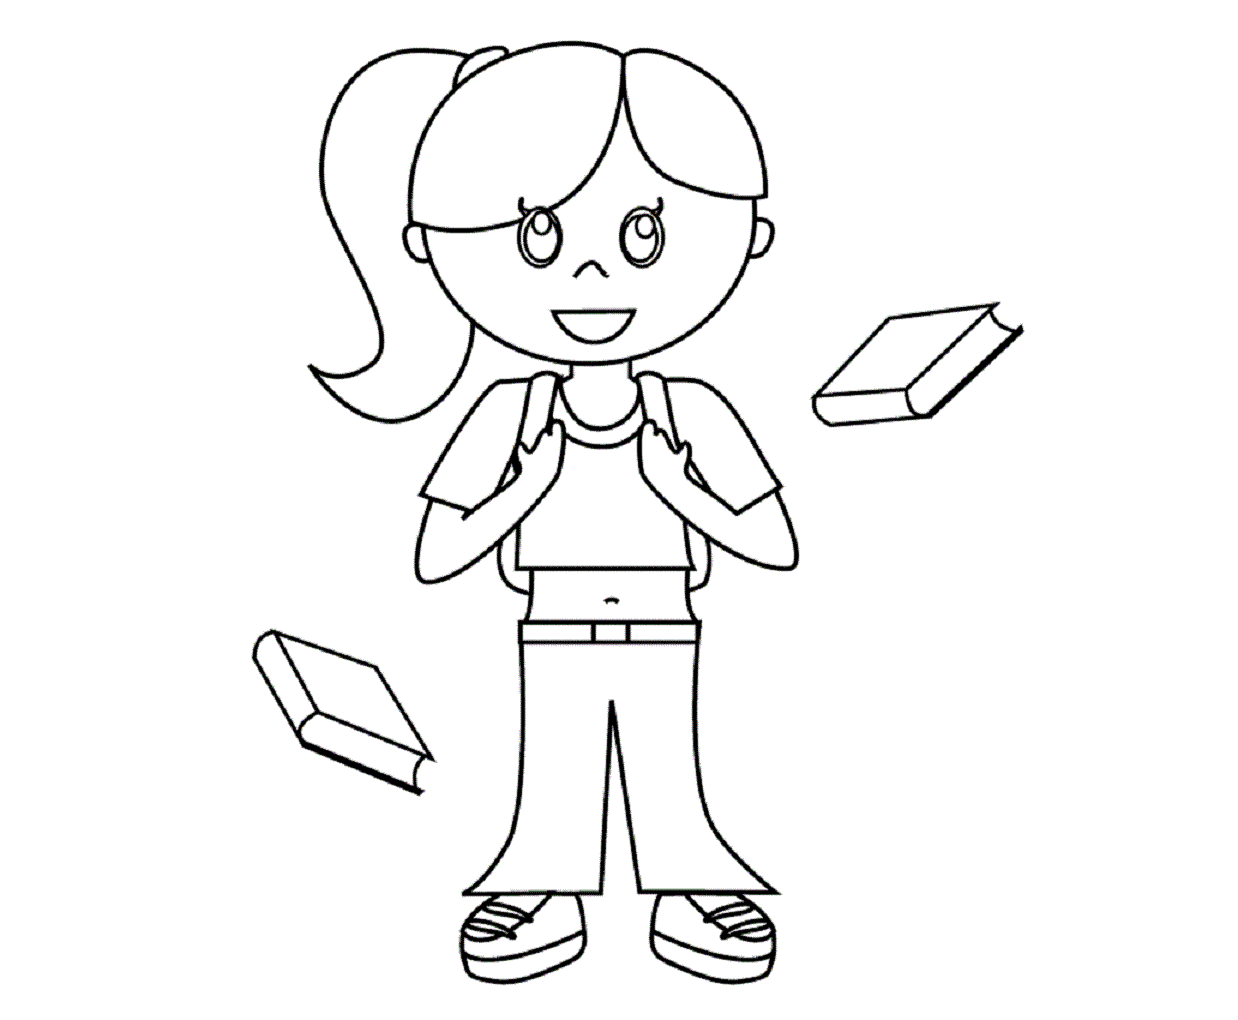 Line Drawing Little Girl : Little girl line drawing at getdrawings free for